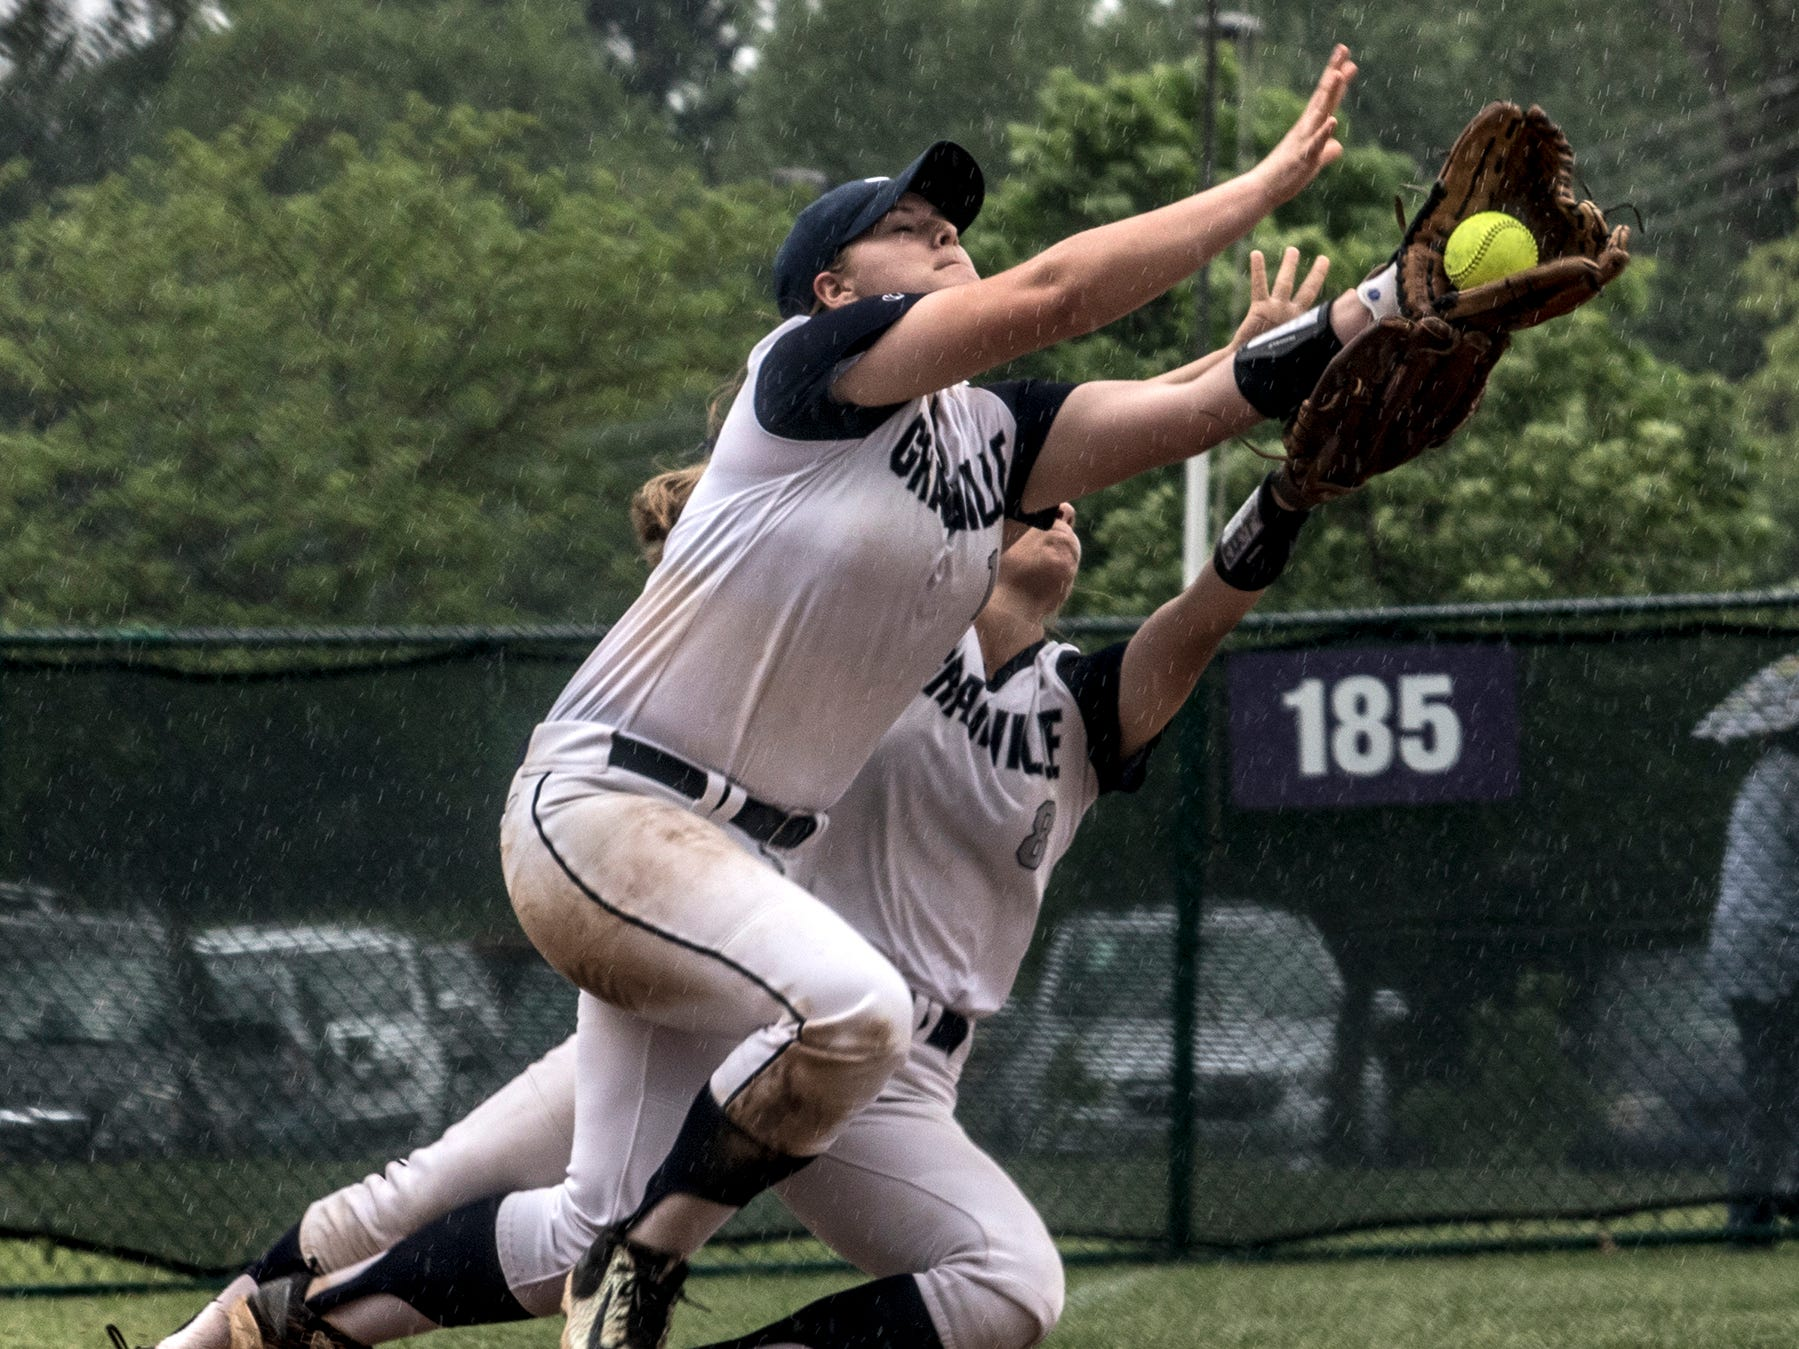 Reghan Benshoter and Shelby Armstrong both reach for the ball at third base, Benshoter caught it, forcing an out. Granville won the Division II district final against Lakewood 9-2.